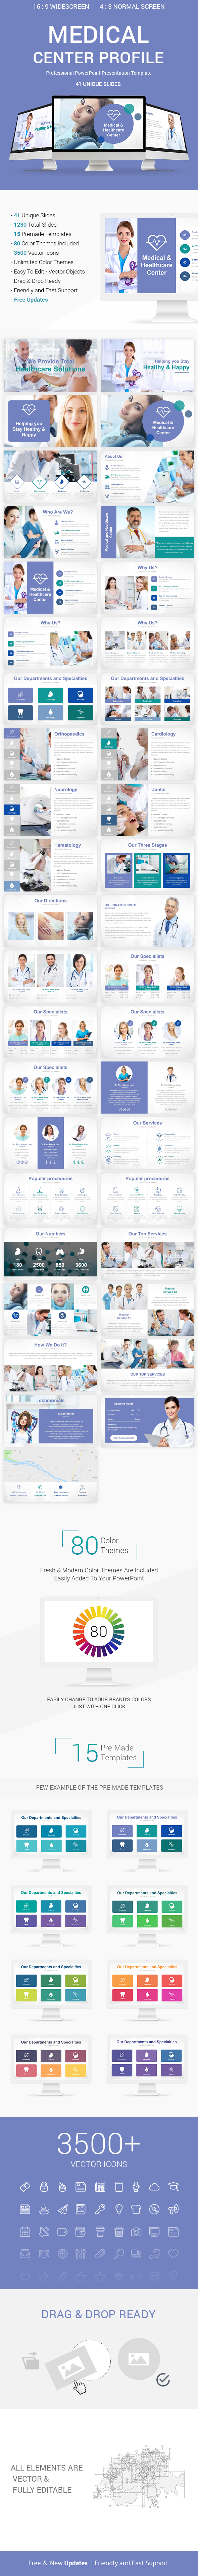 Medical center profile powerpoint presentation template designs by medical center profile powerpoint presentation template designs creative powerpoint templates toneelgroepblik Image collections